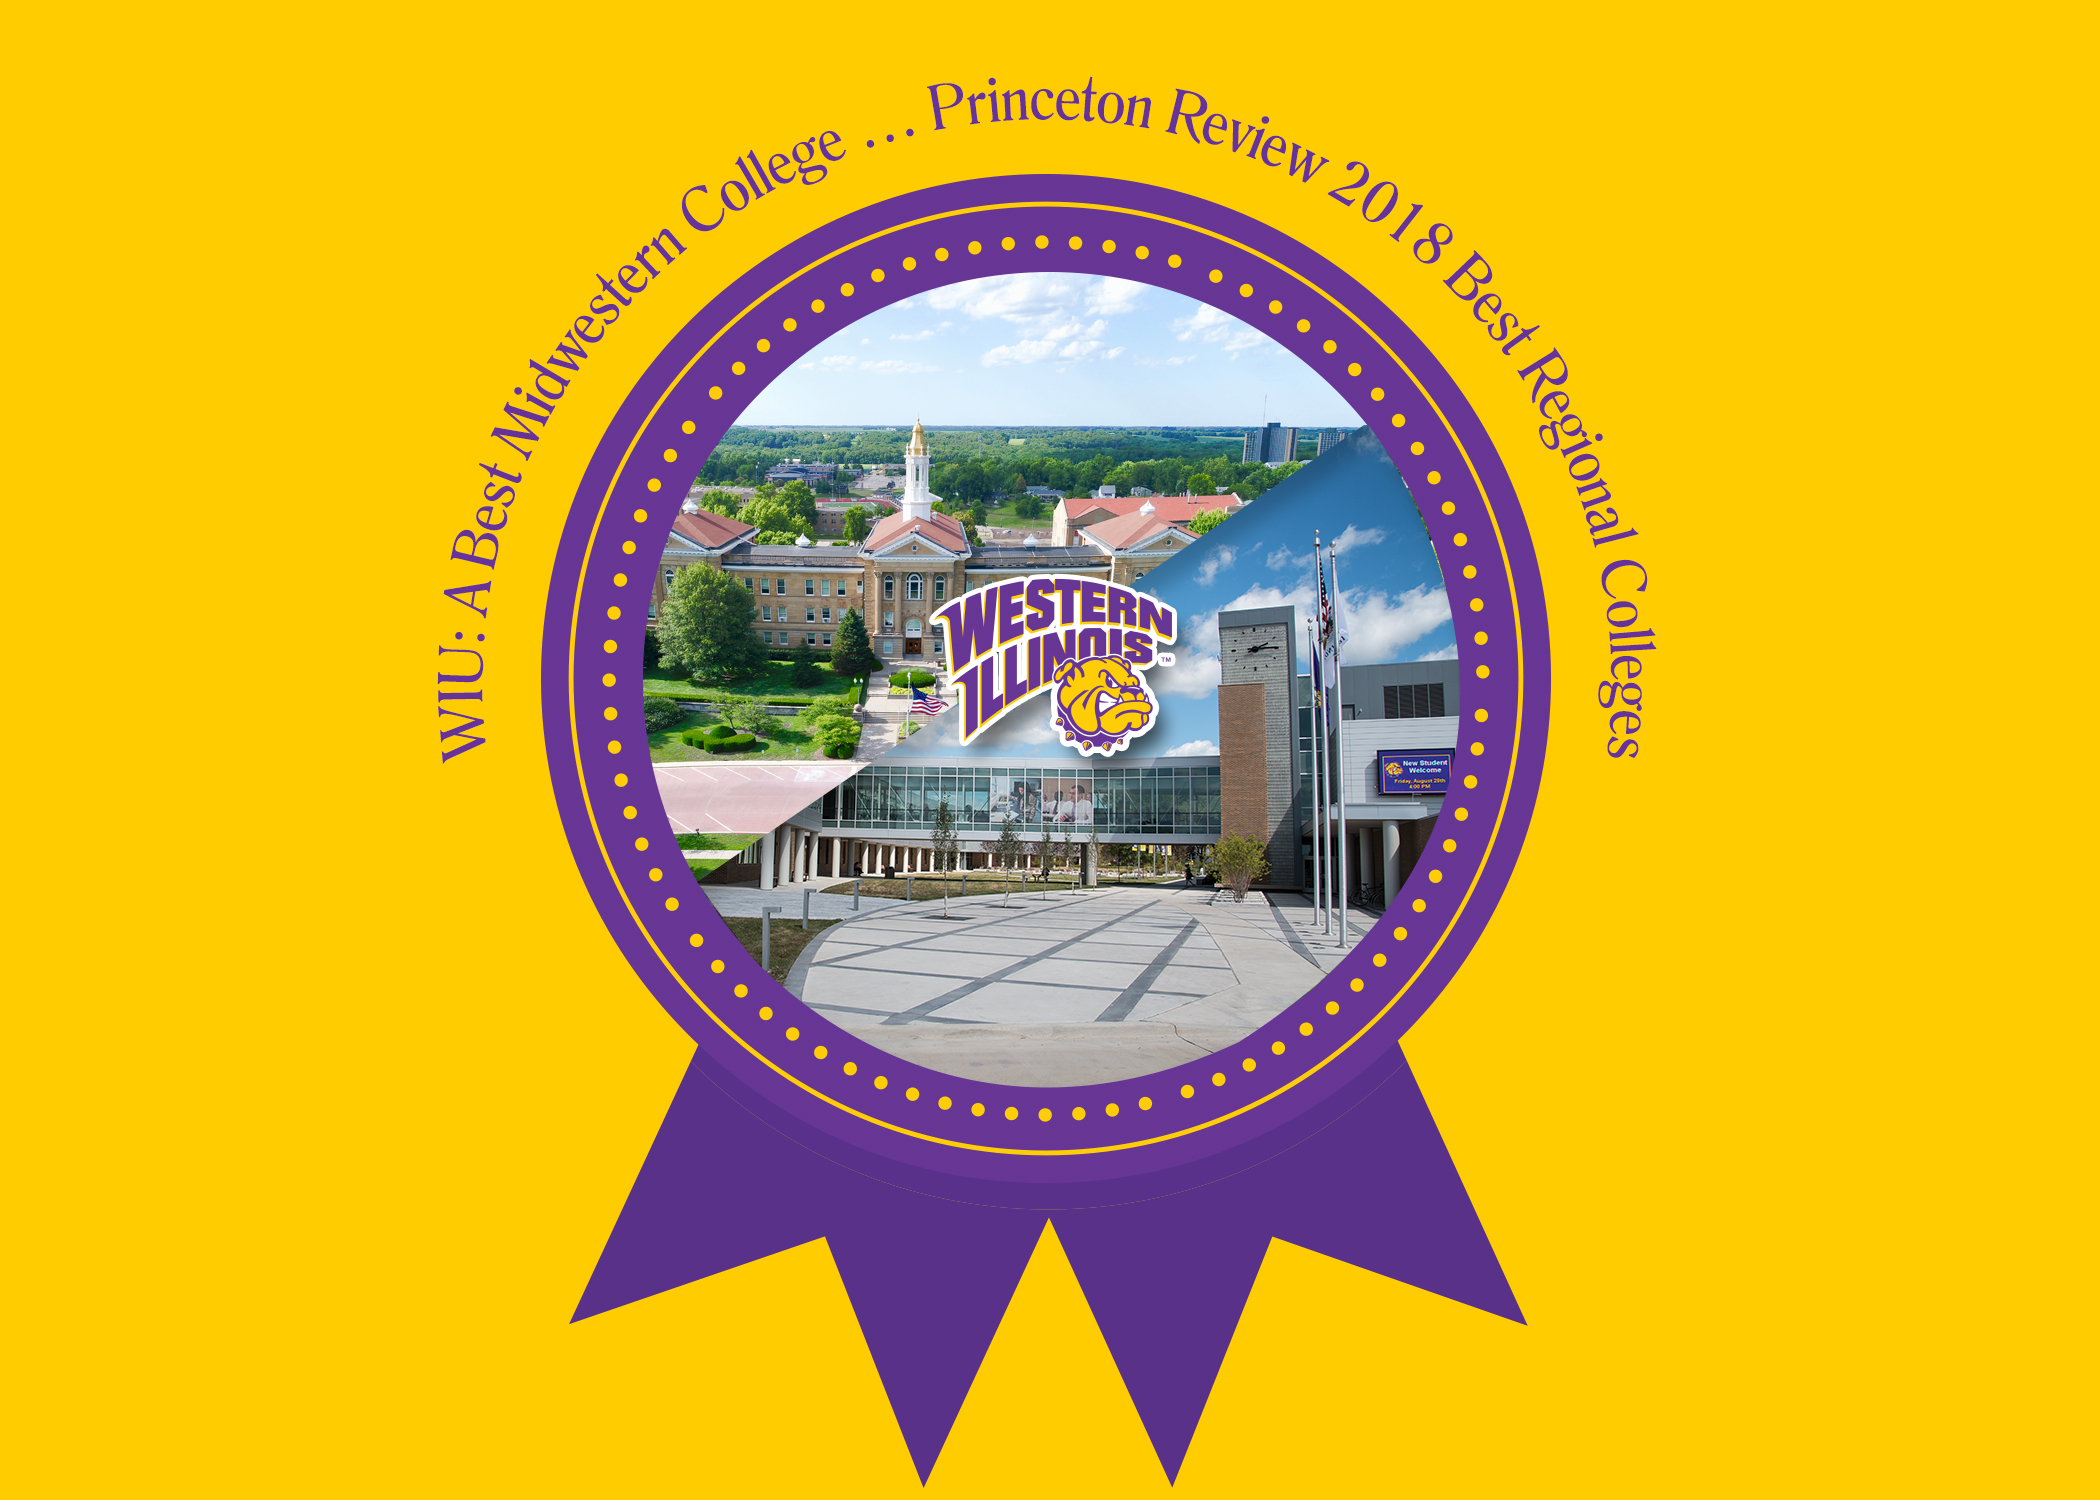 Best Midwestern College by the Princeton Review